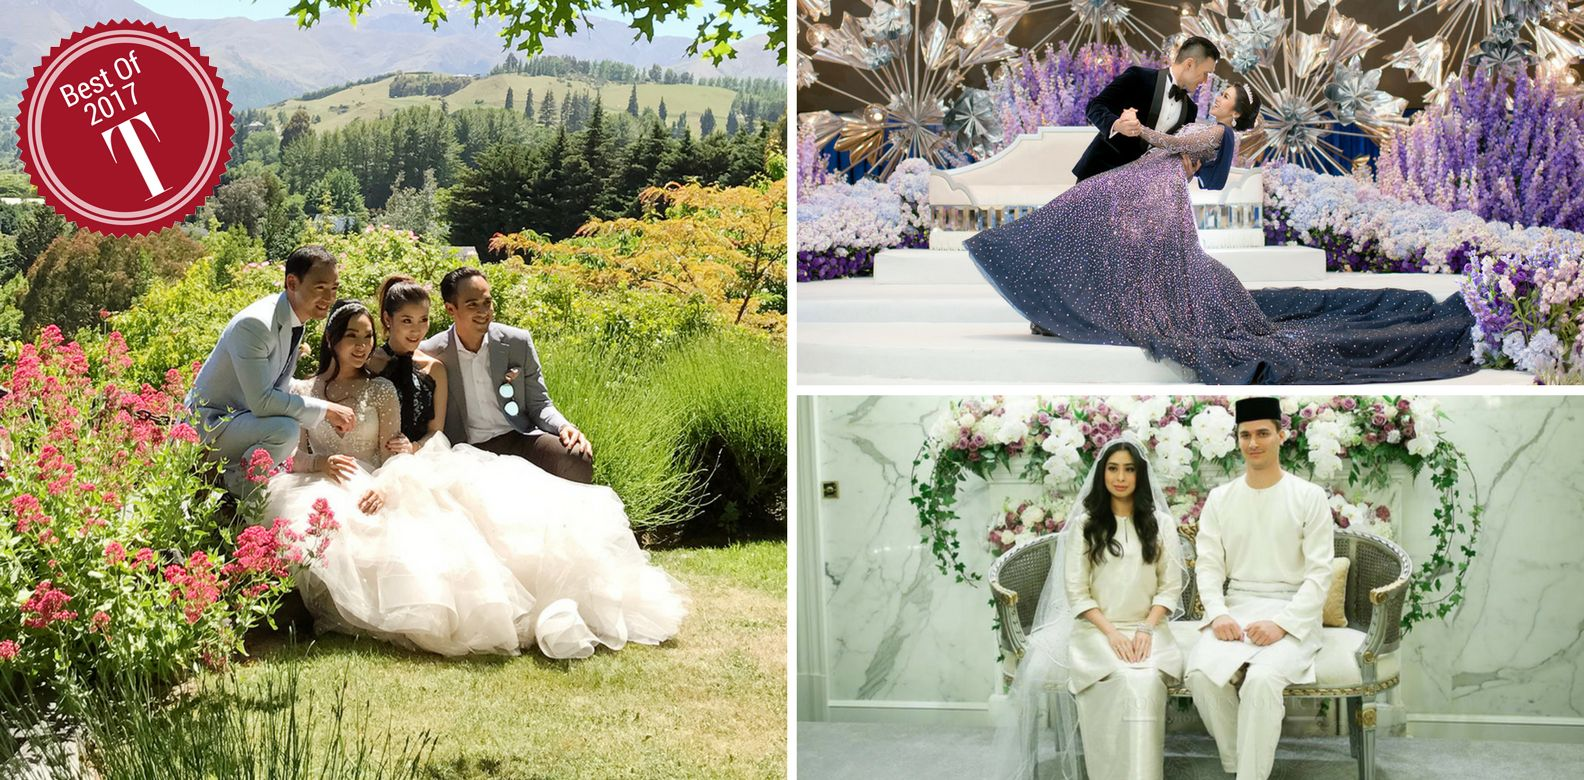 Best Of 2017: The 14 Grand Weddings That Took Our Breath Away ...